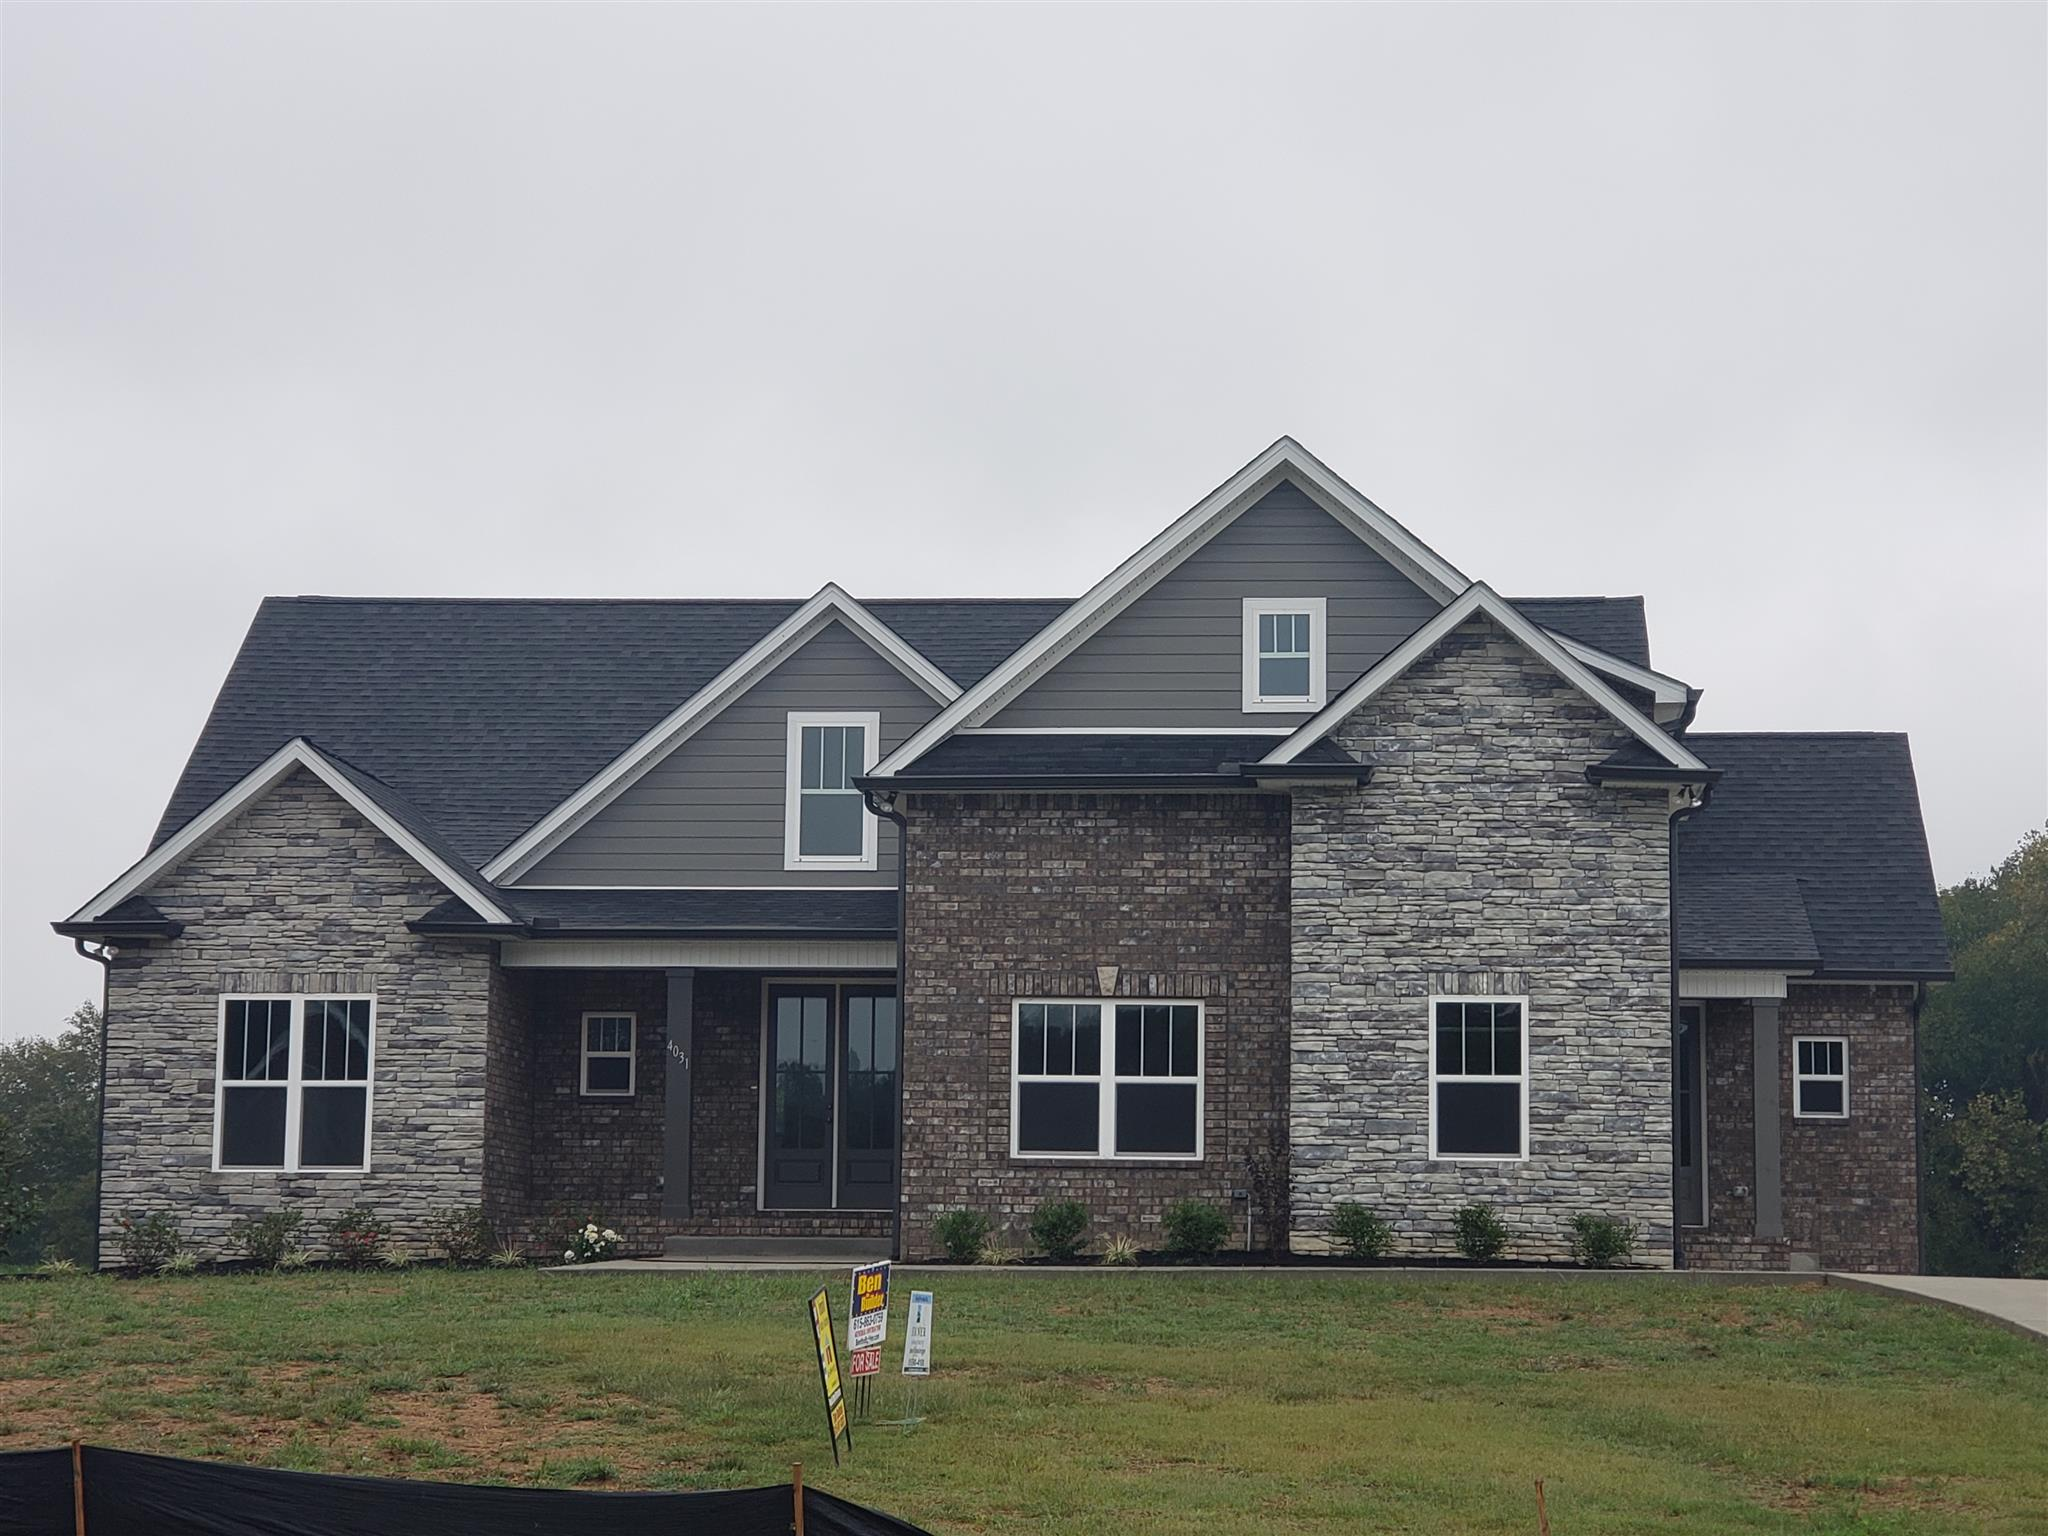 $443,700 - 3Br/4Ba -  for Sale in Pebble Brook, Greenbrier